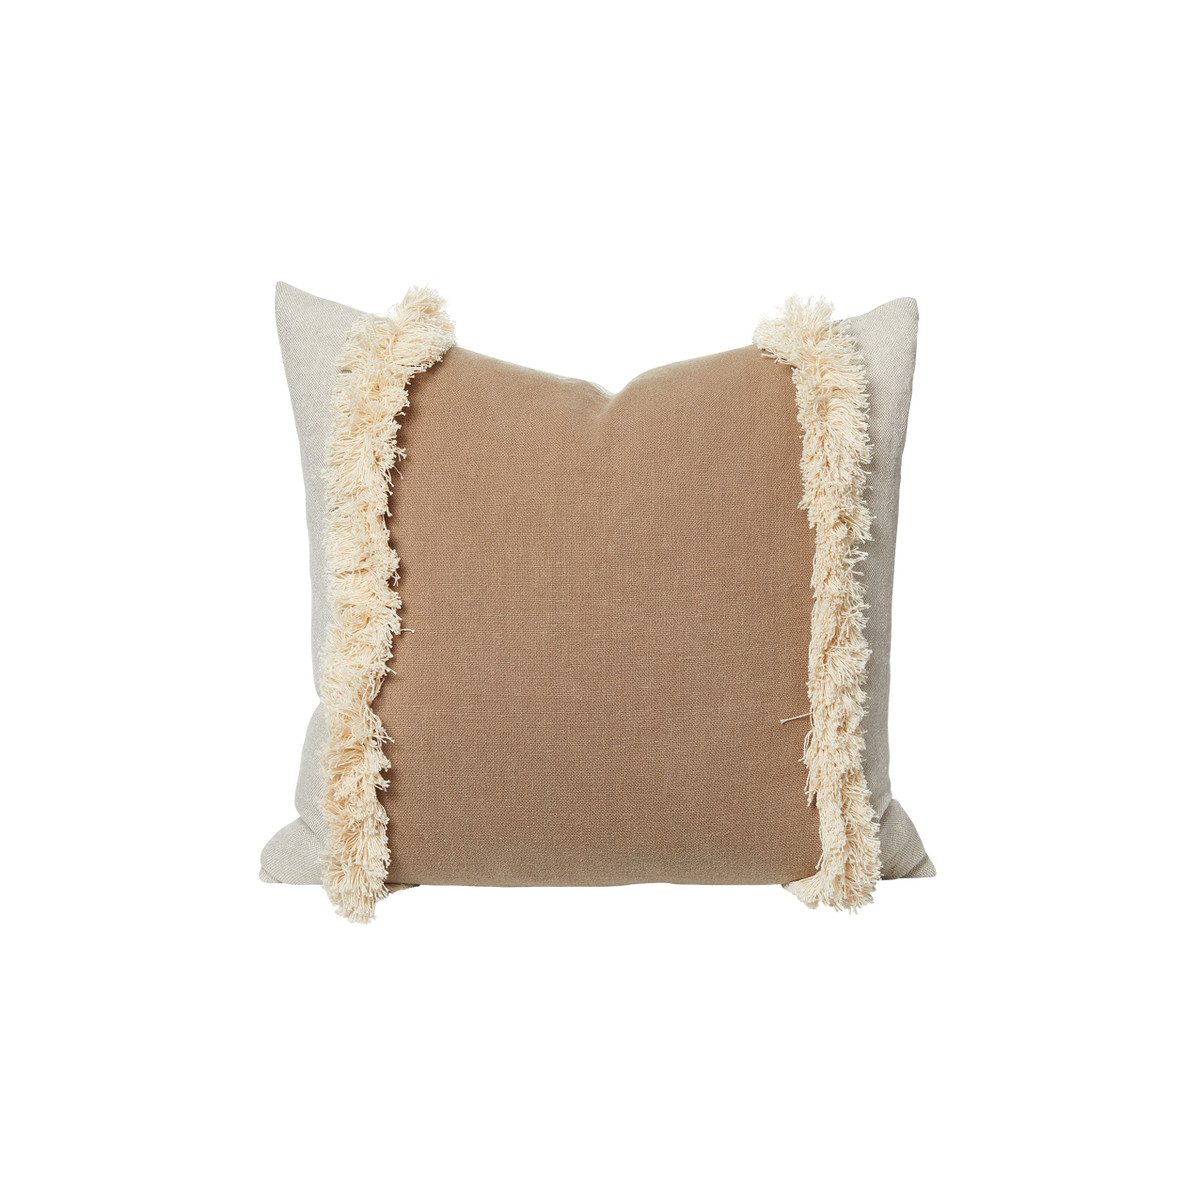 Muse Fringe Linen Pillow Stone - Front